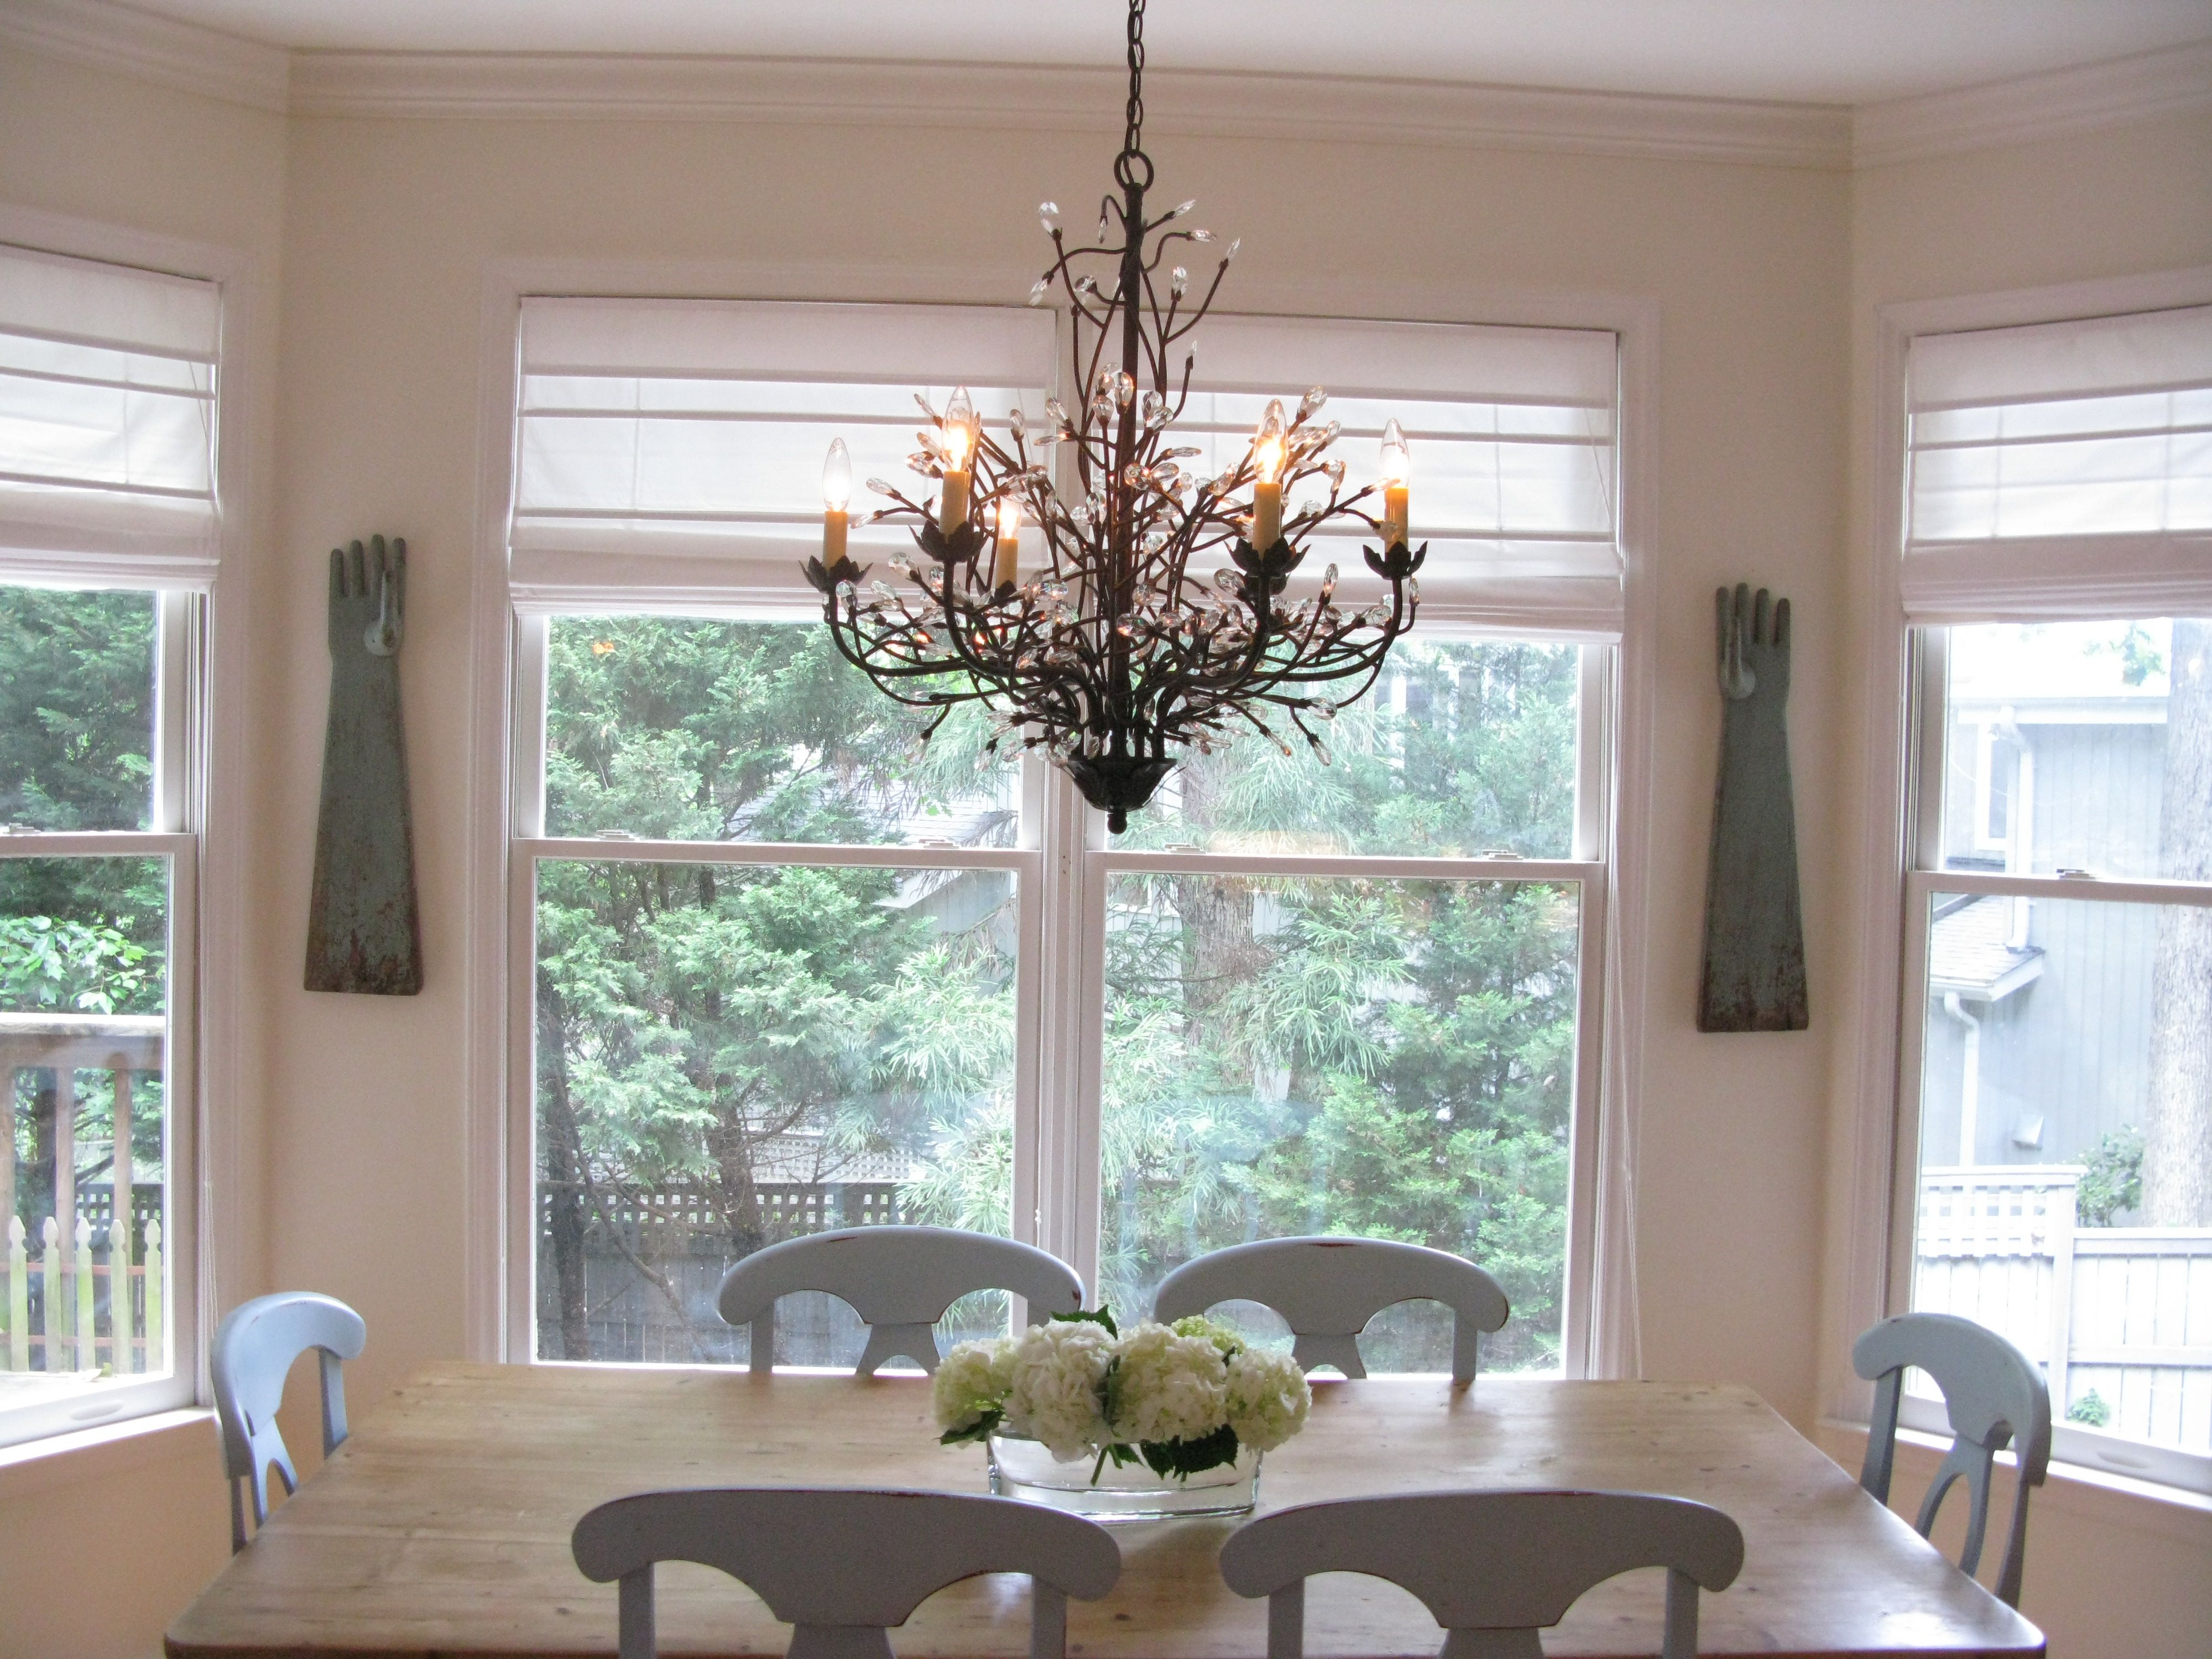 kitchen remodel   My Space   Pinterest   Kitchens, Spaces and House